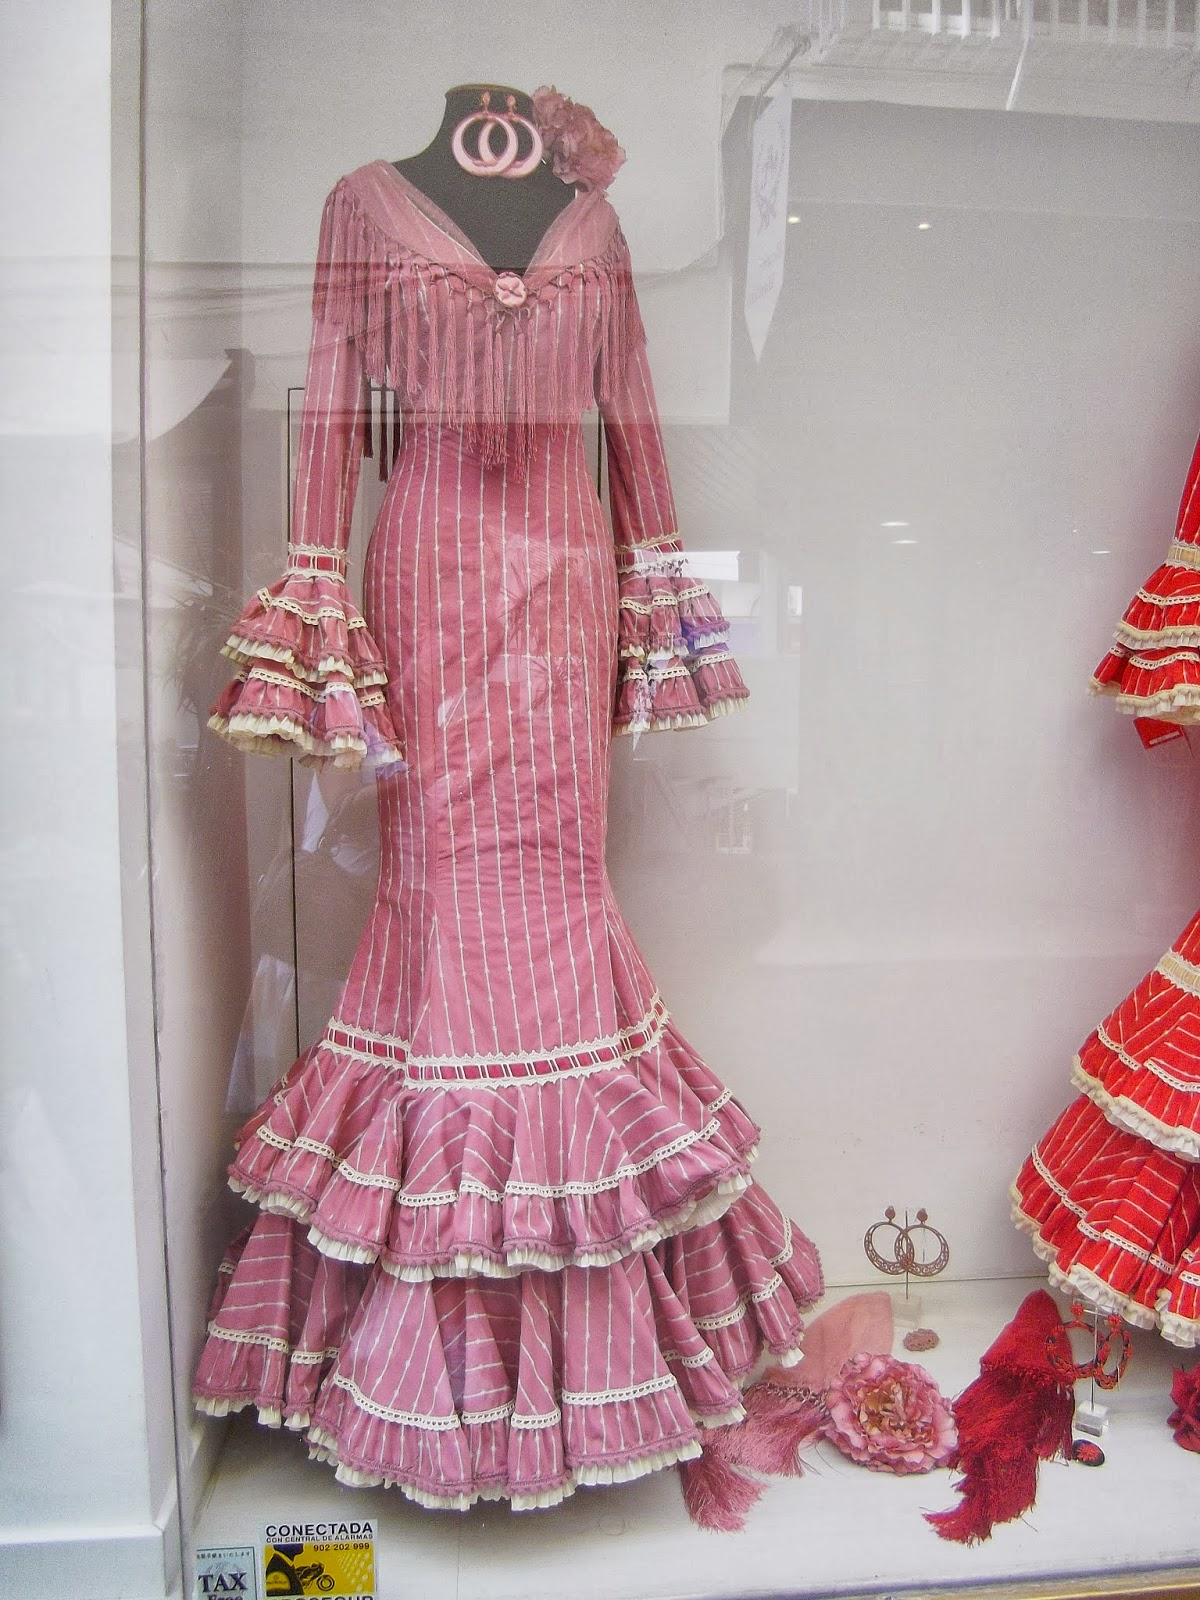 Flamenco Dresses In Sevilla Spain Life In Luxembourg